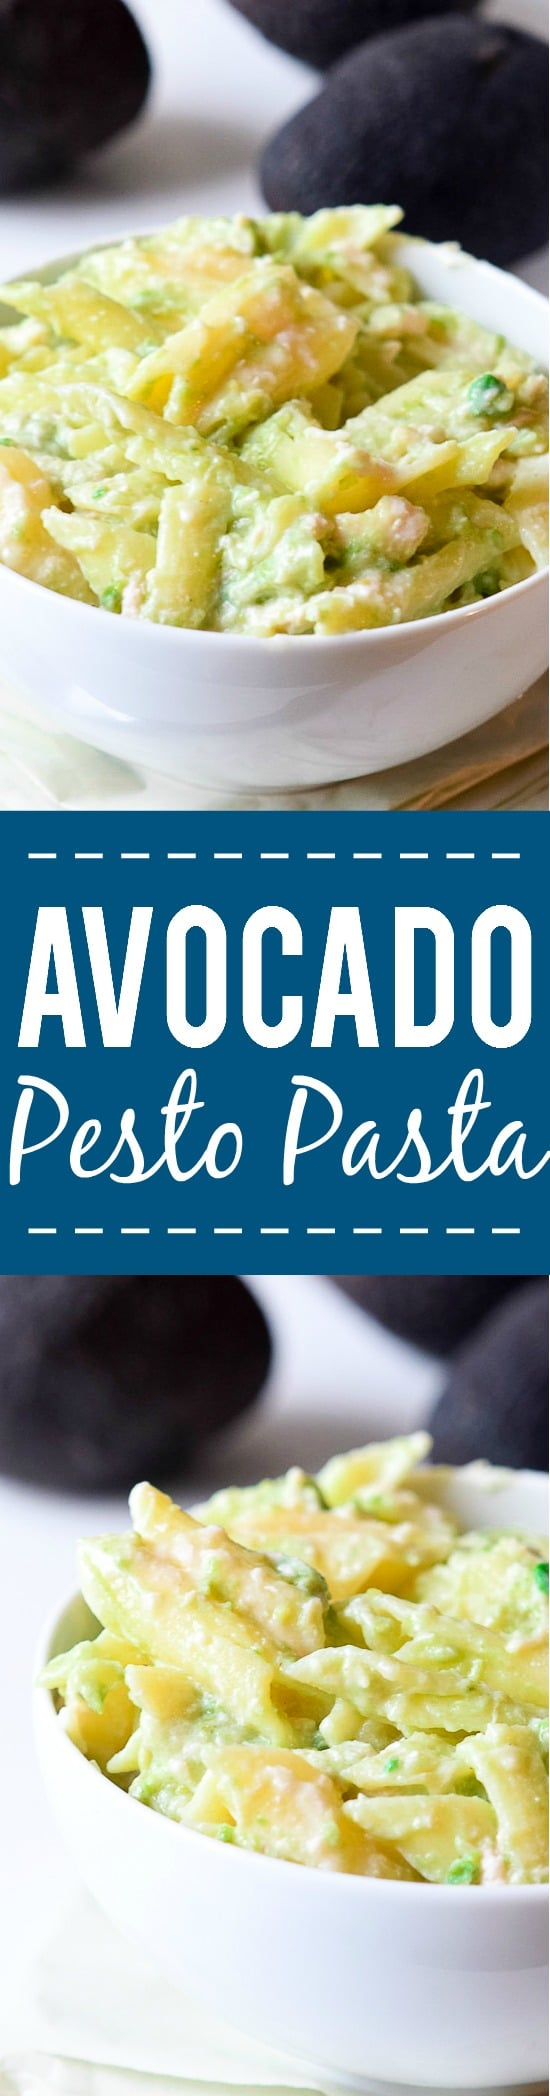 Avocado Pesto Pasta Recipe - Easy and fresh, this Avocado Pesto Pasta is perfect for warm weather, made with fresh basil, tangy lime, creamy avocado and a sprinkle of Parmesan in just 20 minutes!